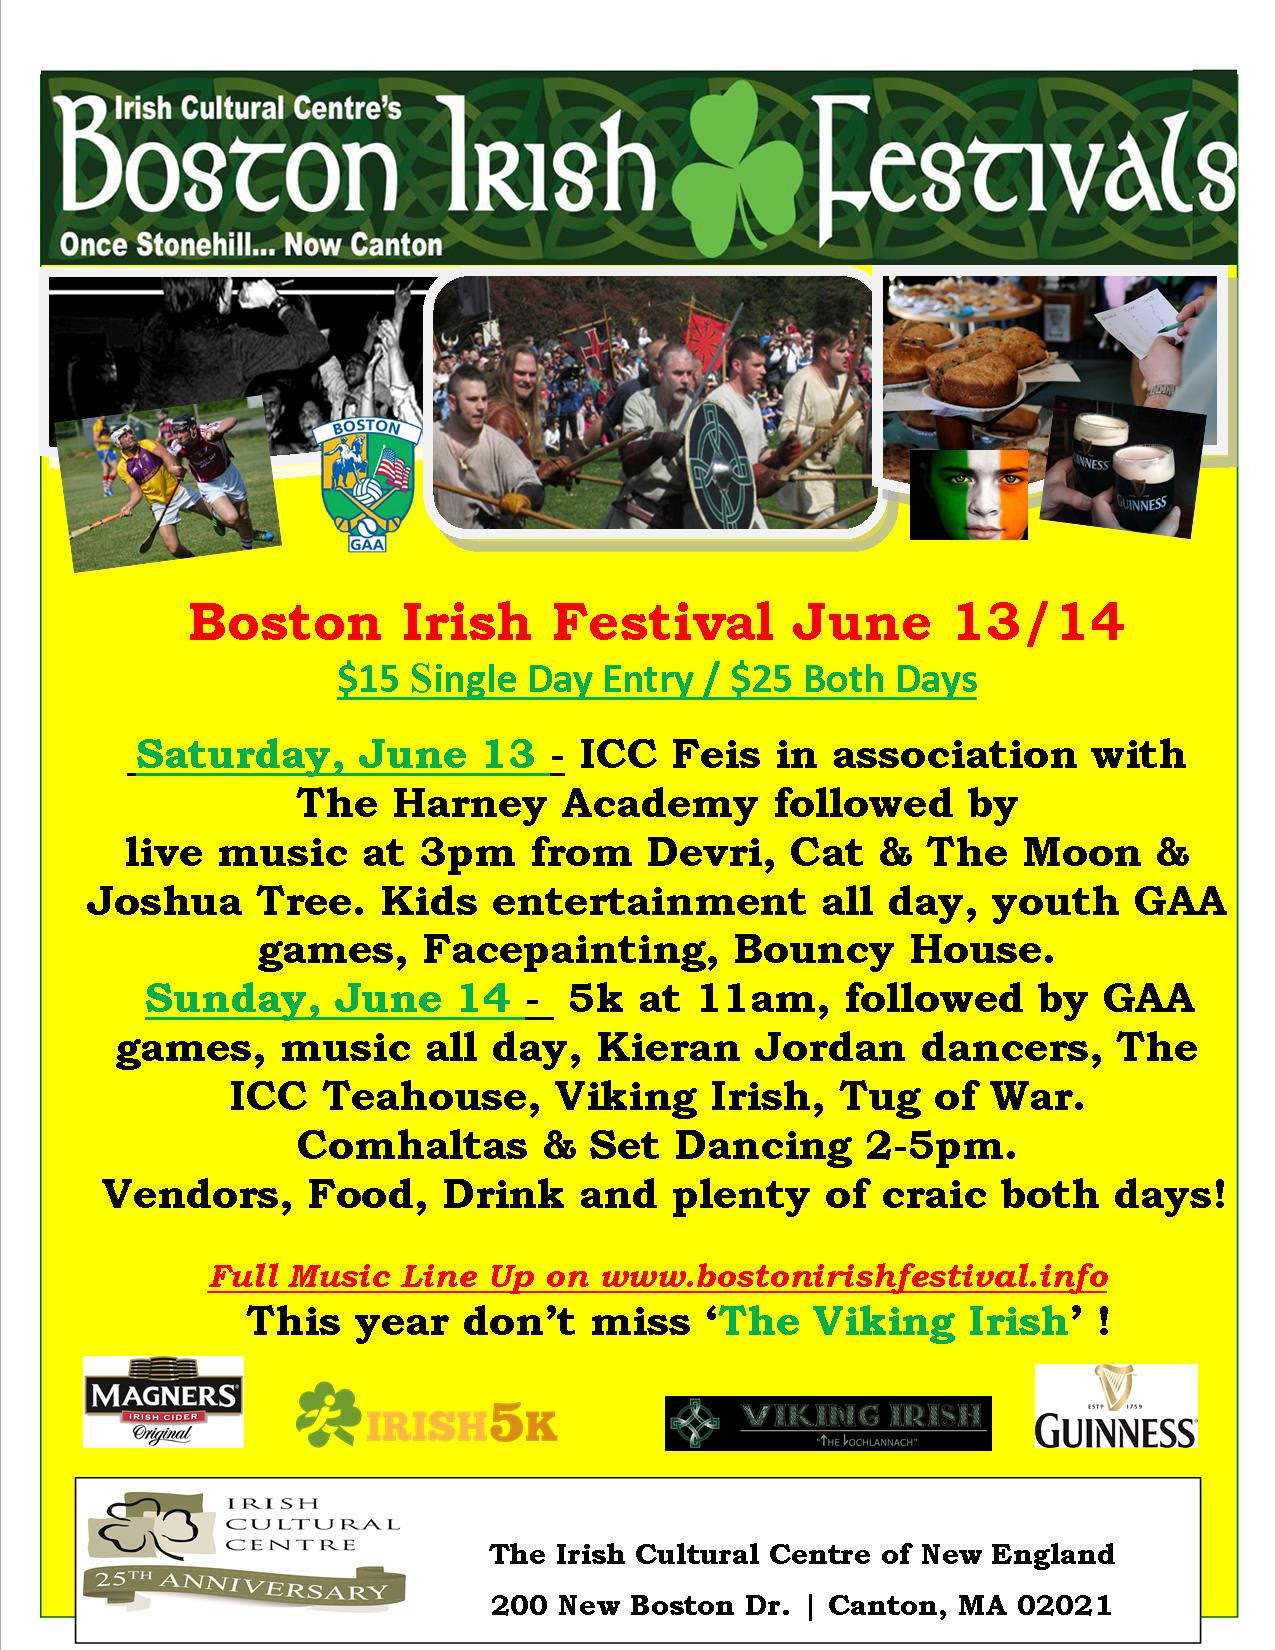 Boston Irish Festival June 13-14, 2015 - Boston Comhaltas musicians play from 2-5PM on Sunday, June 14th.